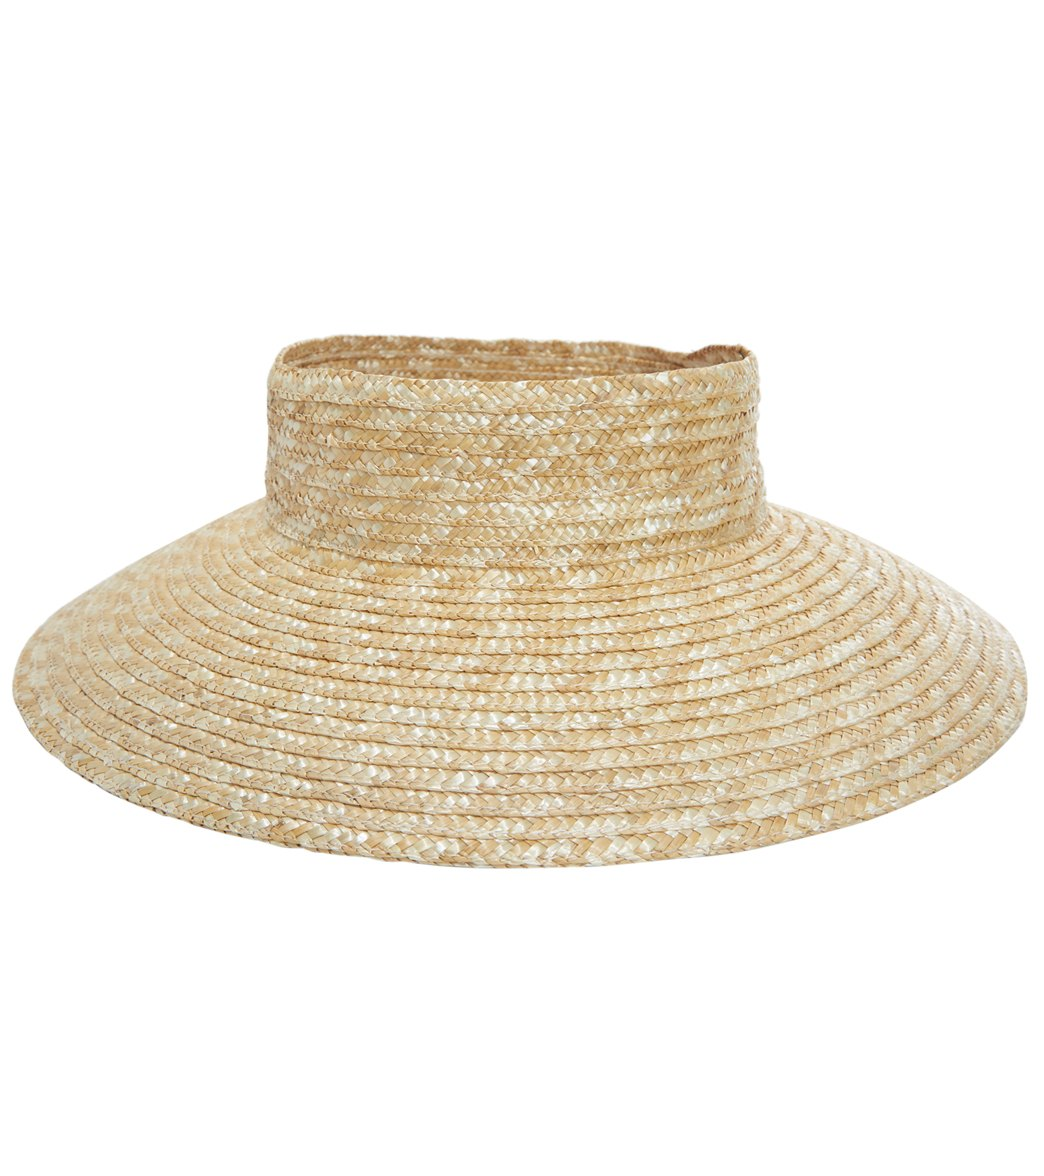 fd26d6f8b Billabong Women's Sea More Straw Open Top Hat